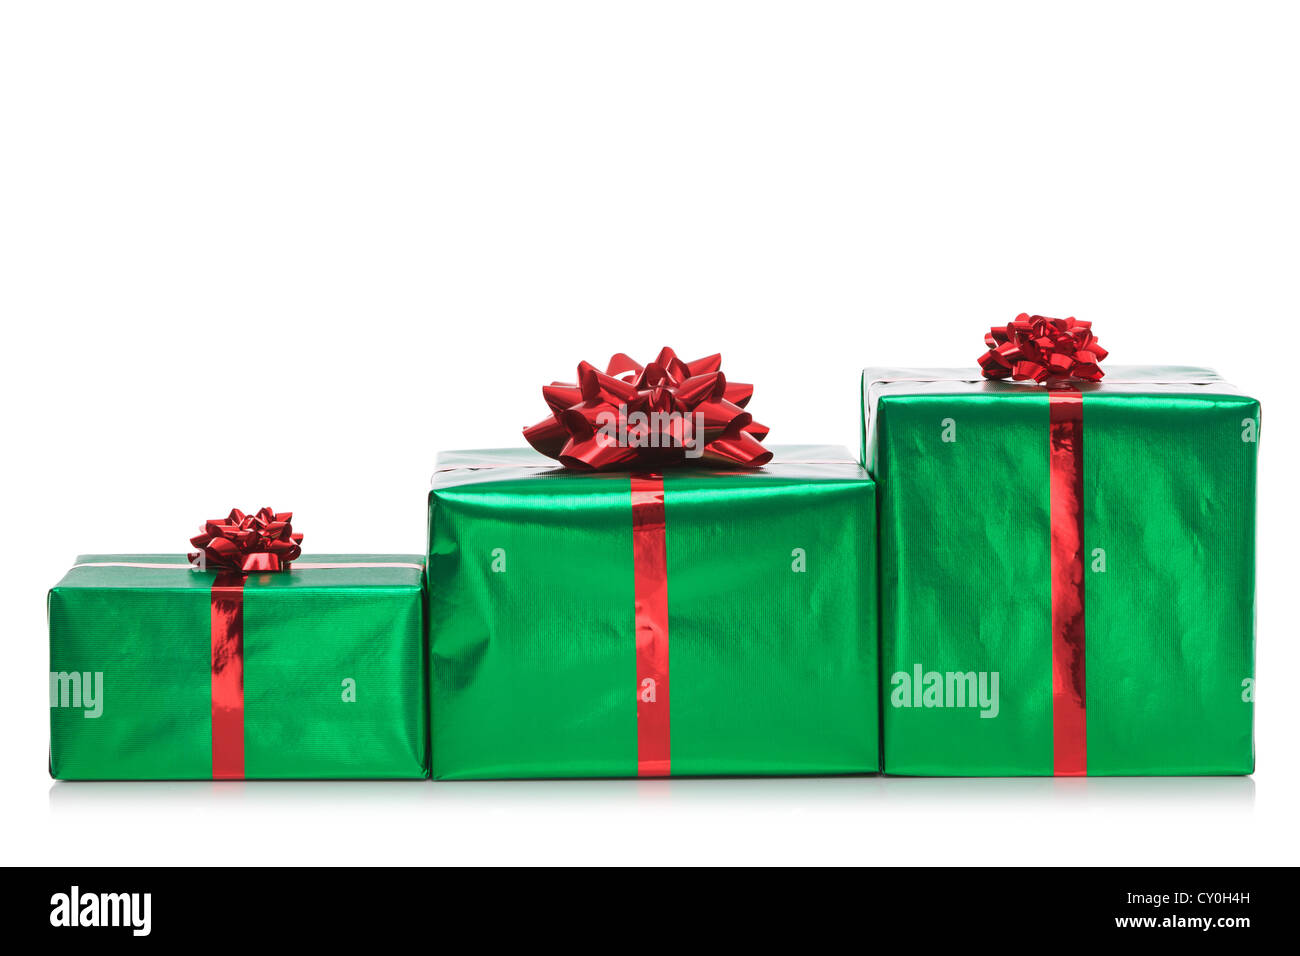 Three gift wrapped presents in green wrapping paper with red bow and ribbon, isolated on a white background. - Stock Image